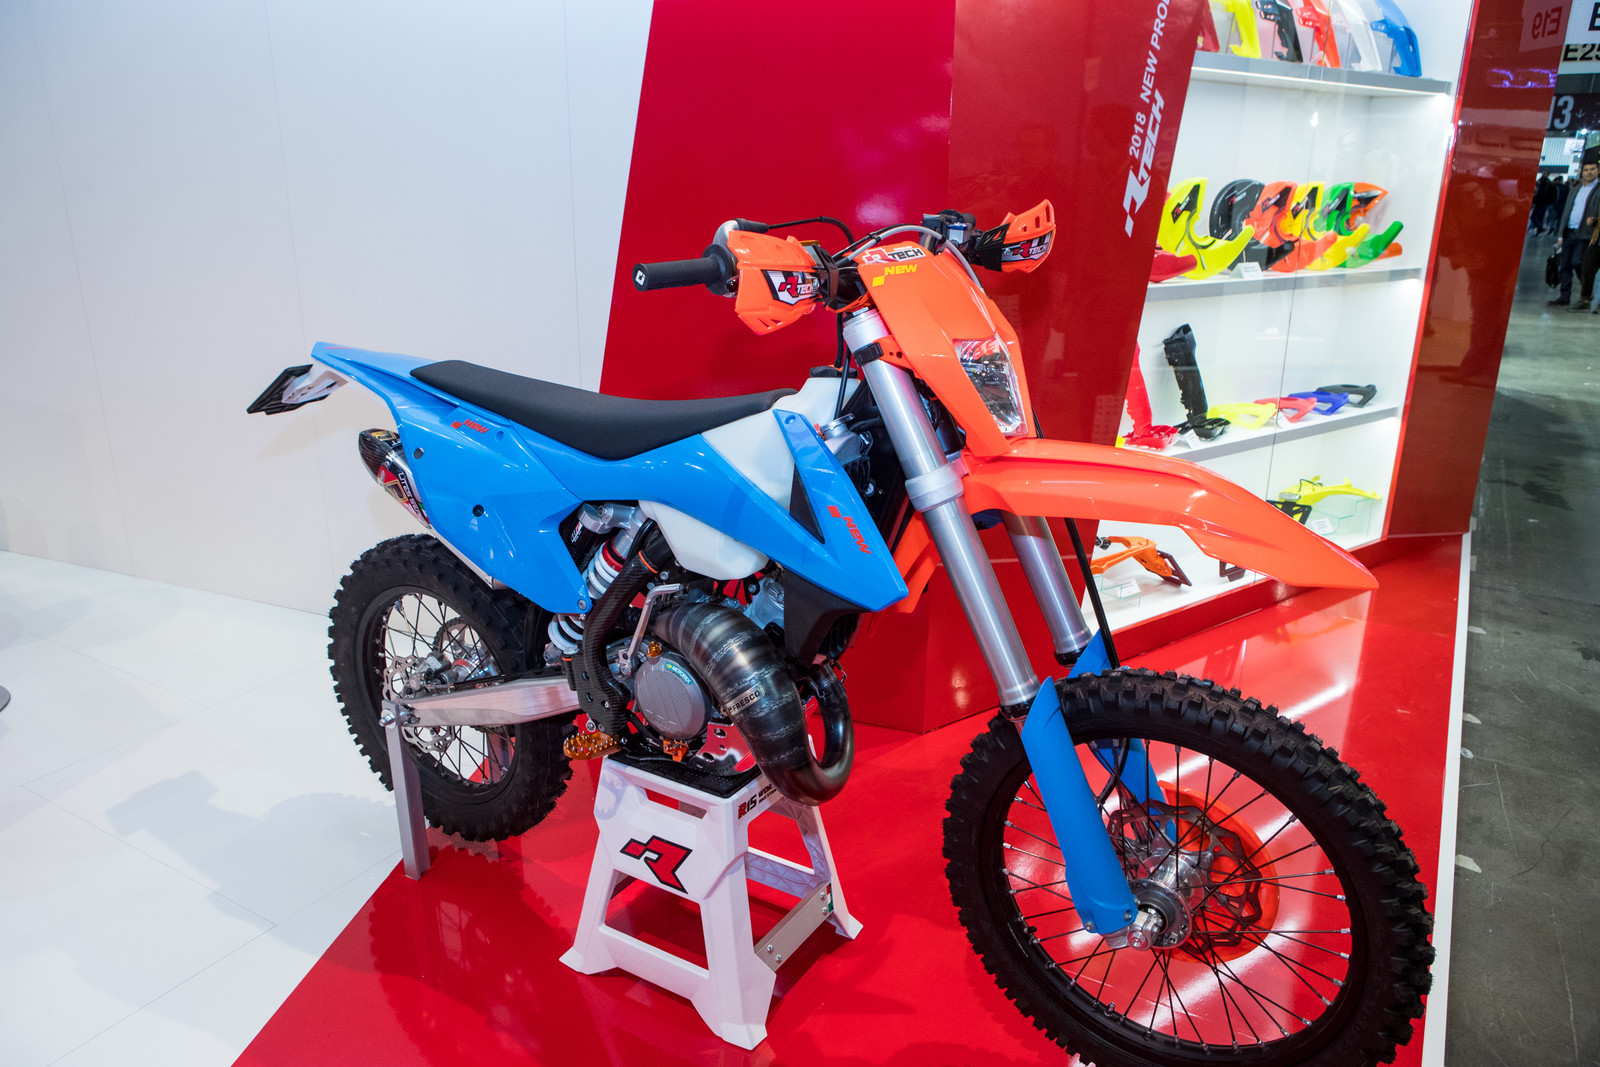 R-Tech - 2017 EICMA - Milan Motorcycle Show: Wrap-Up Coverage - Motocross Pictures - Vital MX